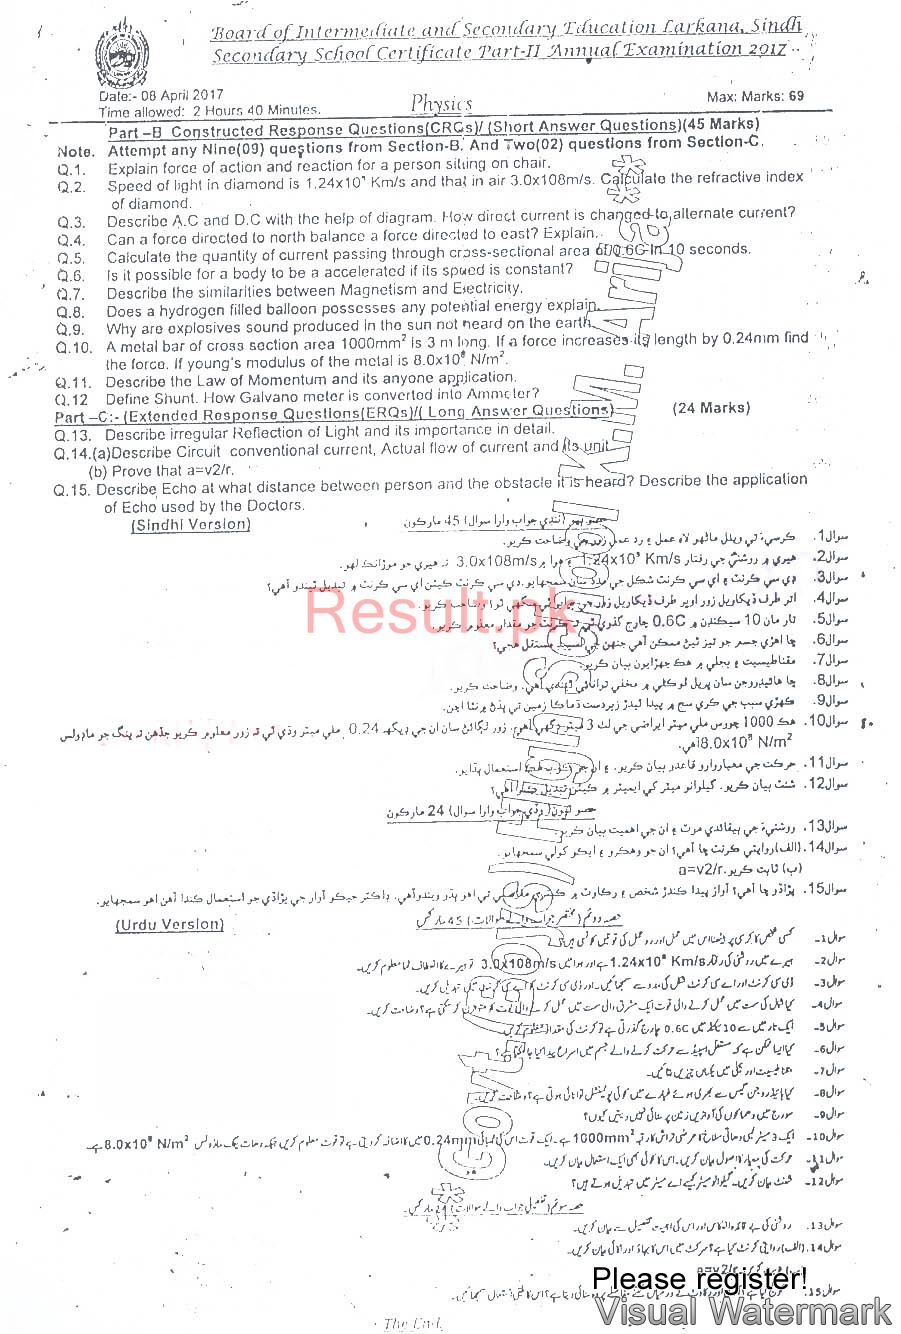 BISE Larkana Board Past Papers 2019 Matric, SSC Part 1 & 2